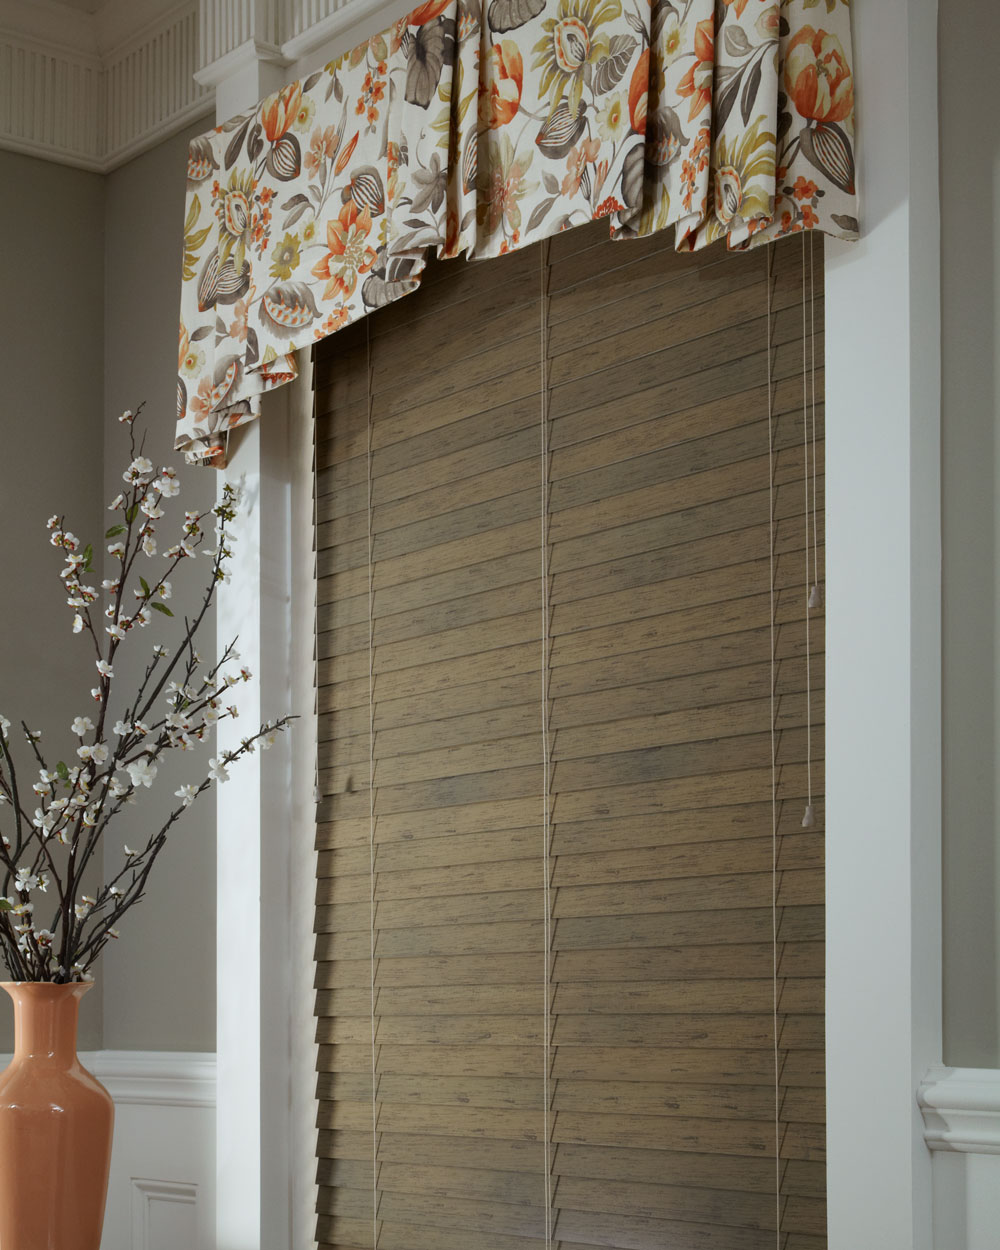 Dark brown Heartland Woods® Wood Blind & Interior Masterpieces Fabric Valance in a white, tan, and orange floral pattern